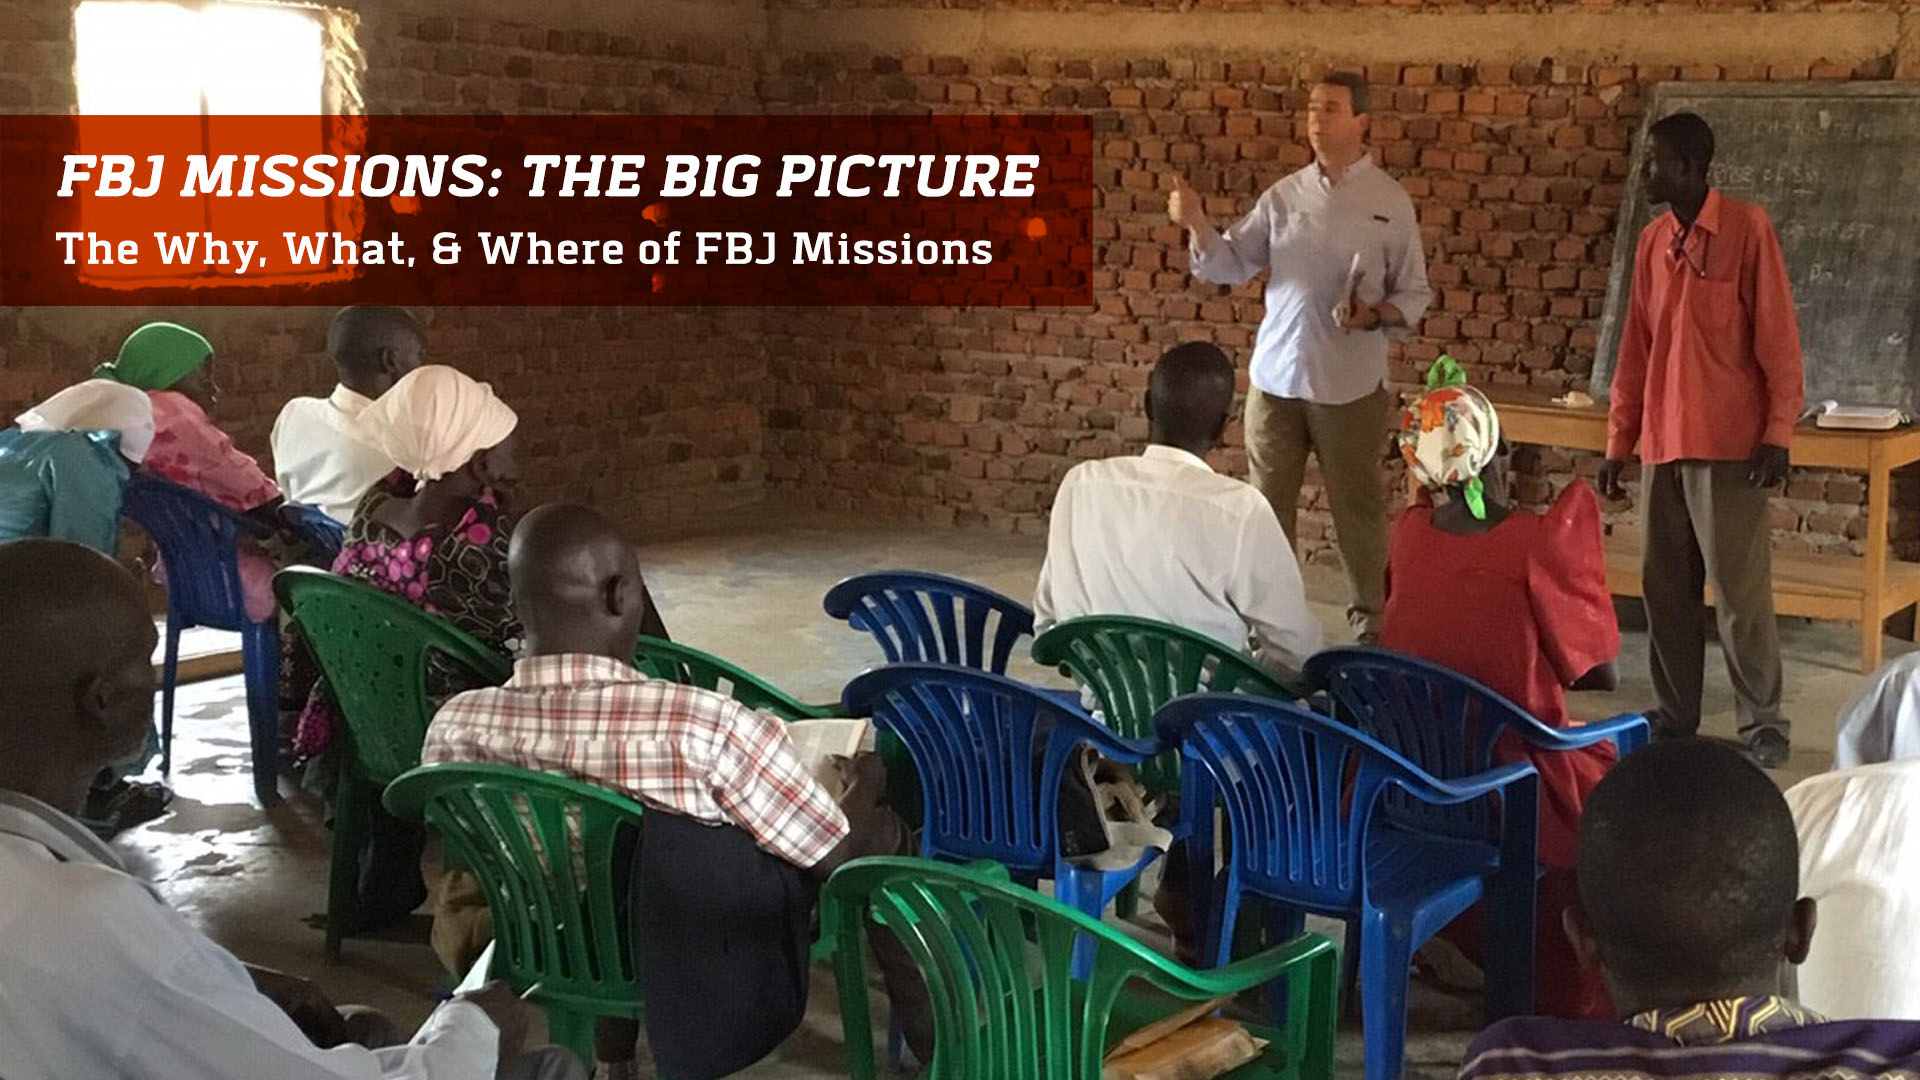 First Baptist Jackson | FBJ Missions: The Big Picture